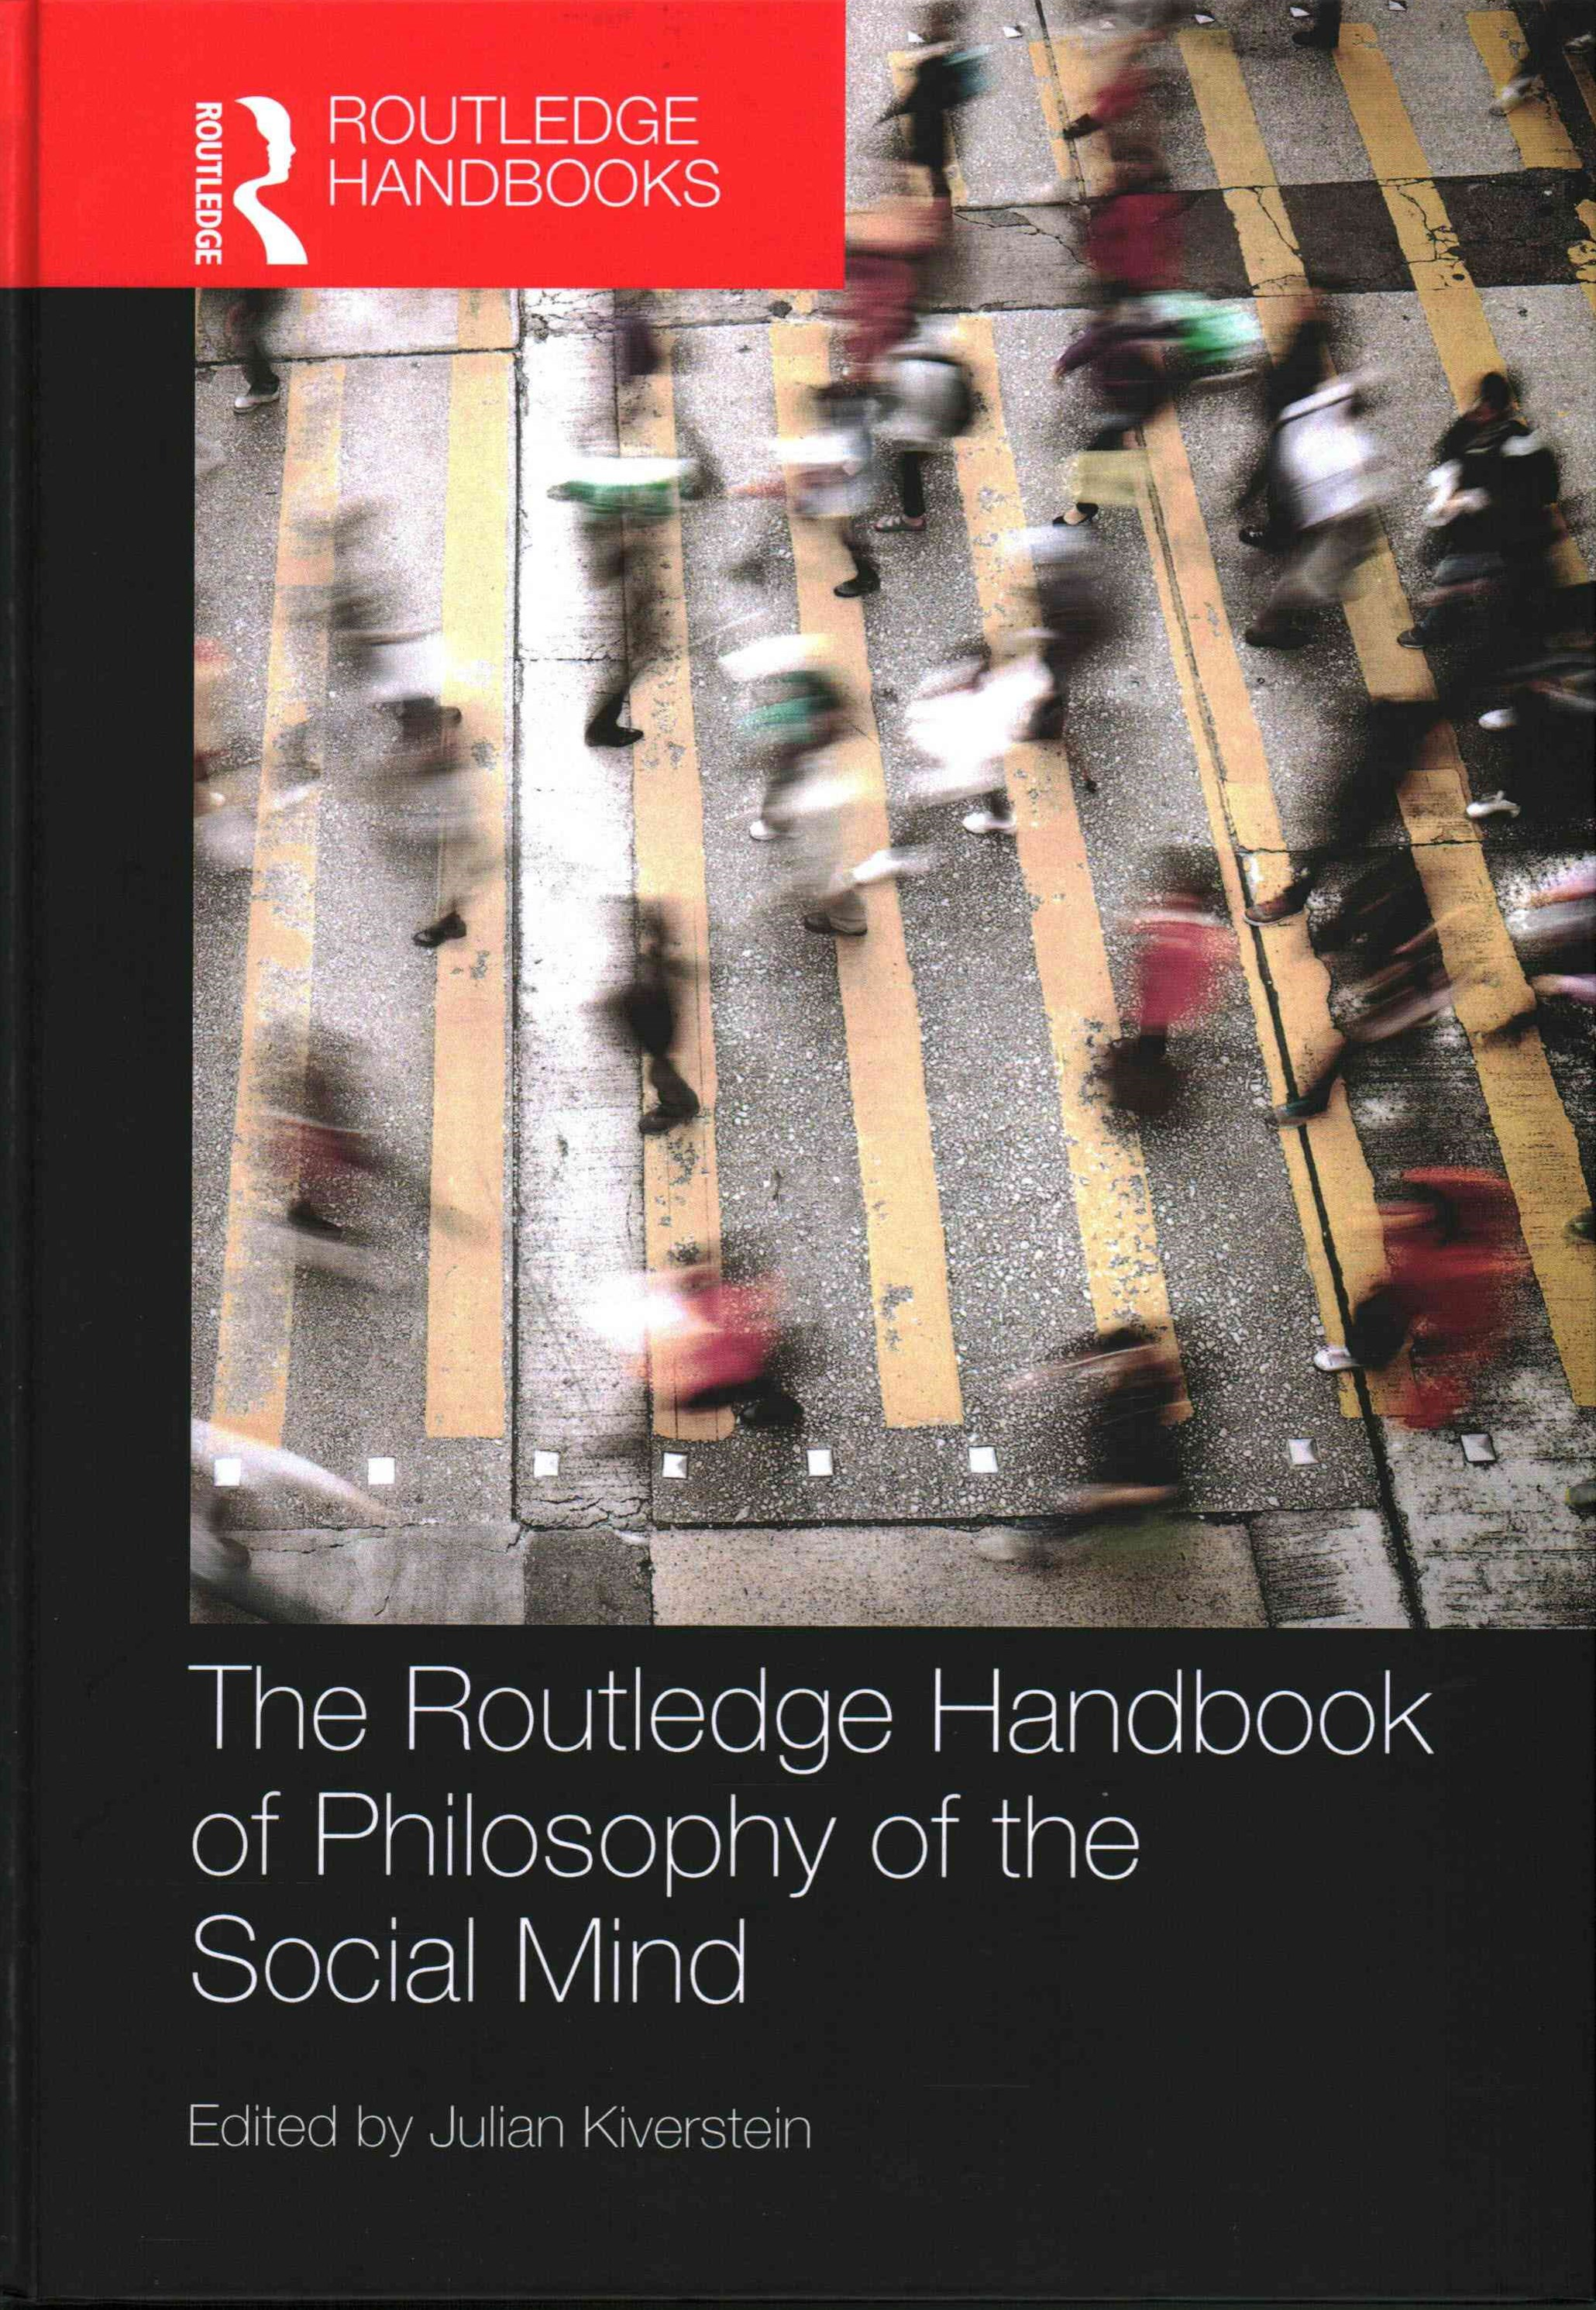 Routledge Handbook of Philosophy of the Social Mind